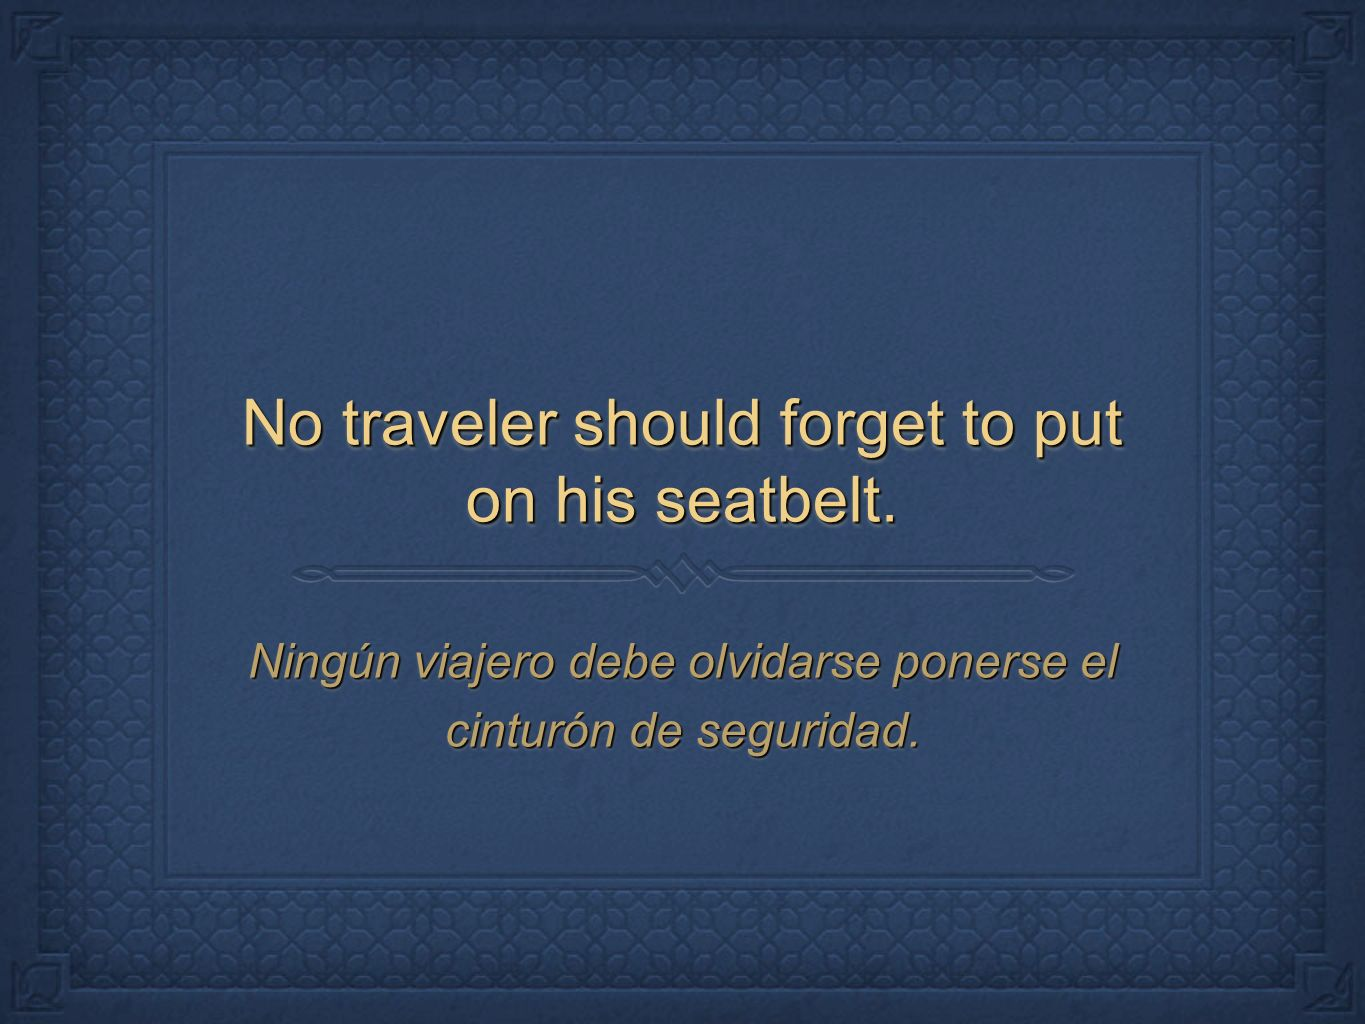 No traveler should forget to put on his seatbelt.